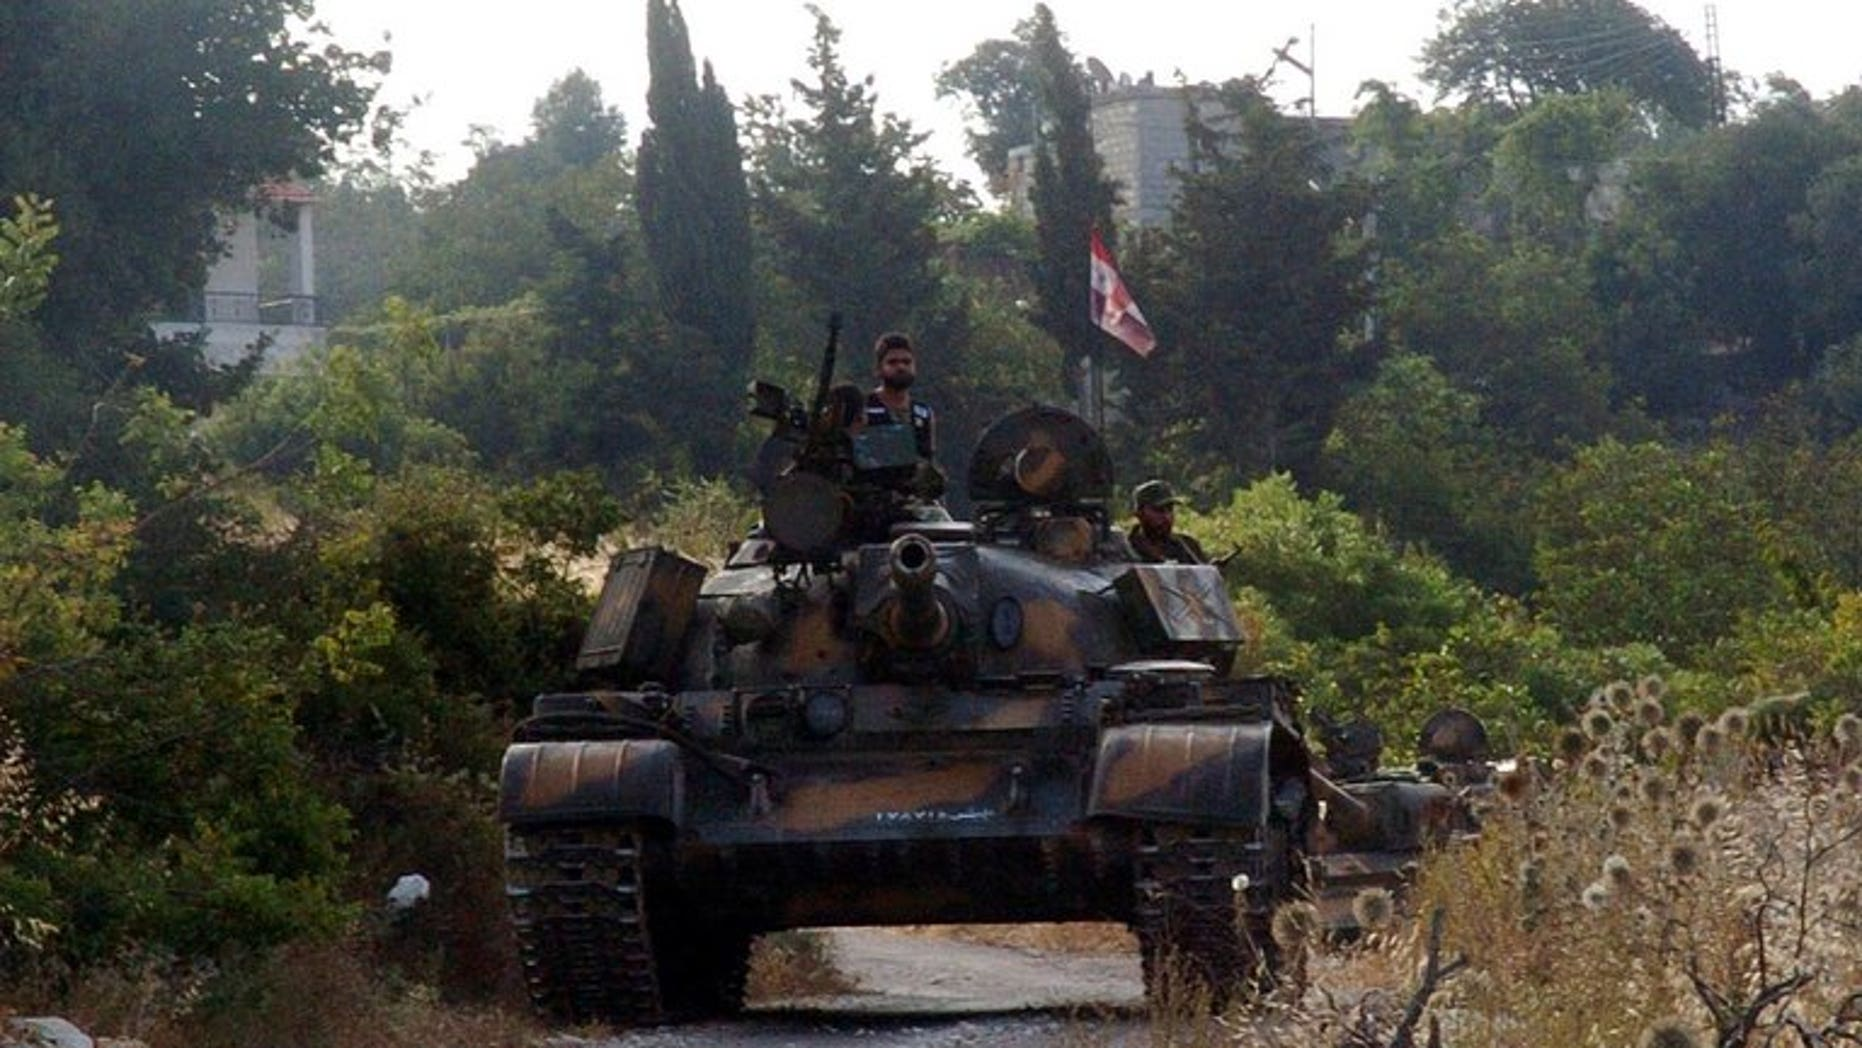 A handout picture released by the Syrian Arab News Agency (SANA) on August 8, 2013 shows Syrian army tanks parked on the side of a road during an alleged pursuit of opposition fighters in the Latakia province, western Syria. Fierce fighting raged in Latakia province on Syria's coastline on Sunday, as the army pushed an advance and killed a jihadist leader, a monitoring group said.